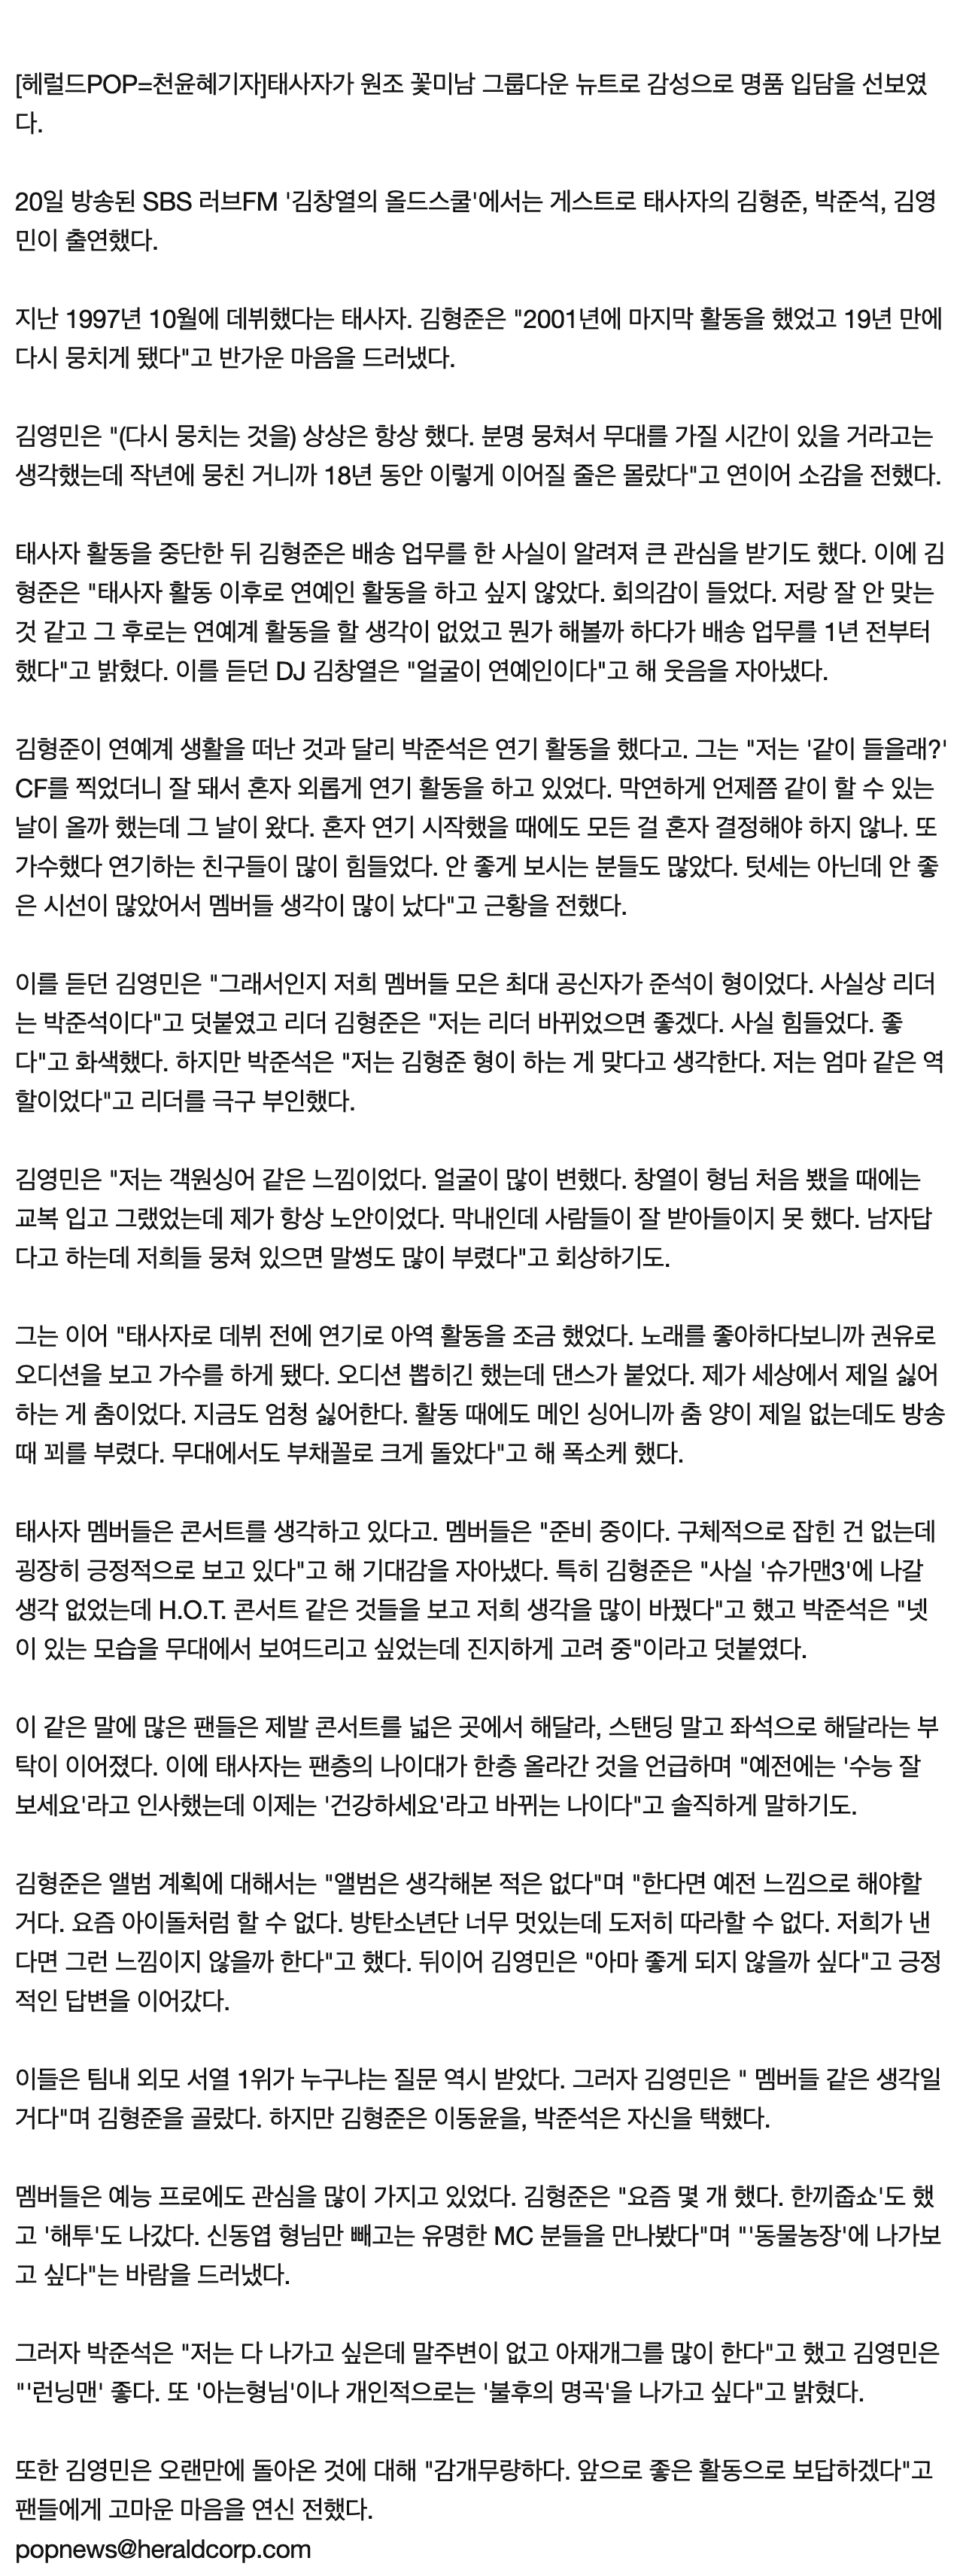 screencapture-n-news-naver-entertain-article-112-0003259327-2020-01-31-16_06_37-B